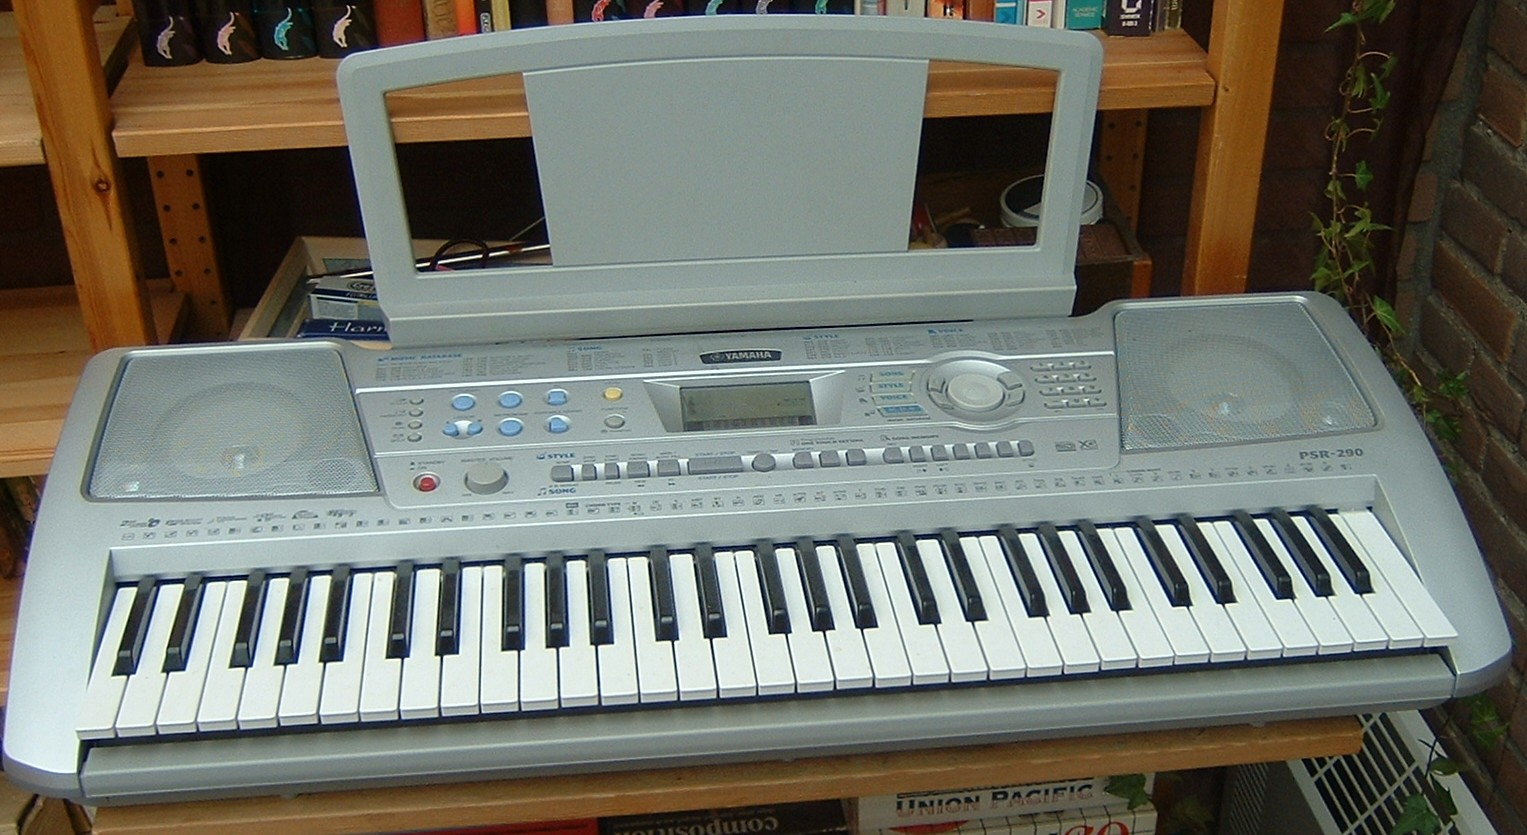 https://i2.wp.com/upload.wikimedia.org/wikipedia/commons/2/22/YamahaKeyboard.jpg